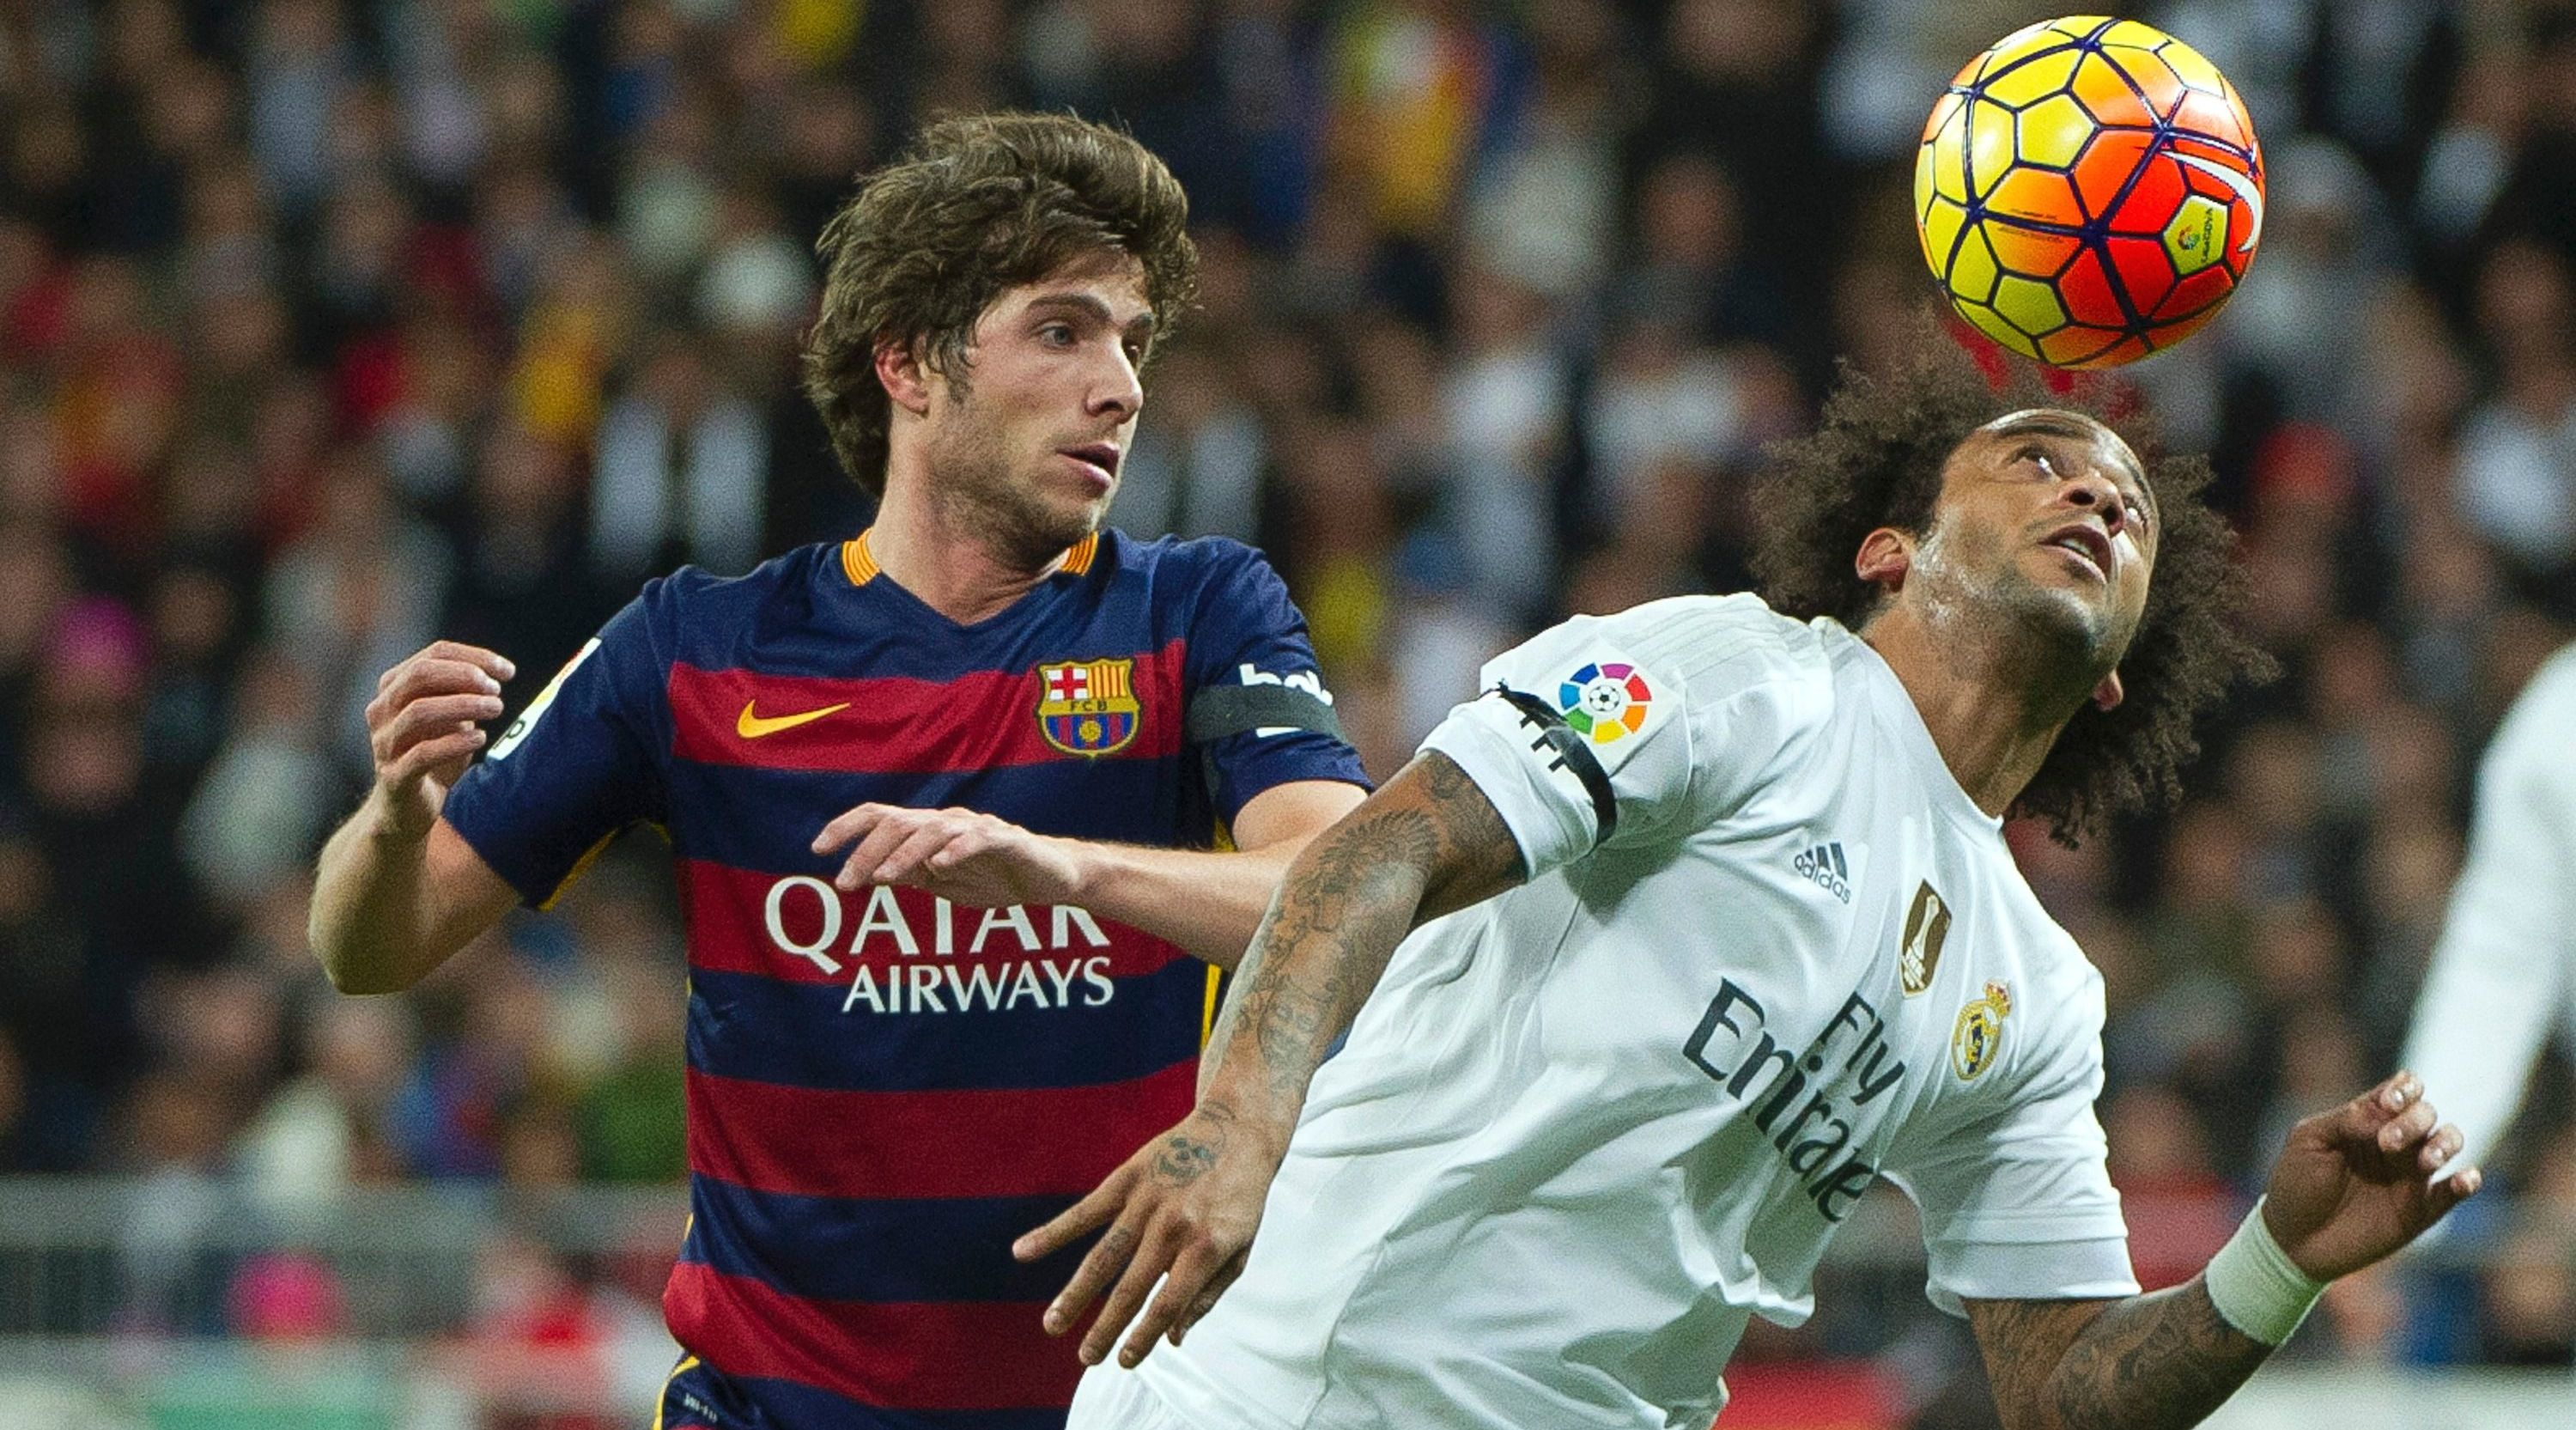 "Real Madrid's Brazilian defender Marcelo (R) vies with Barcelona's midfielder Sergi Roberto during the Spanish league ""Clasico"" football match Real Madrid CF vs FC Barcelona at the Santiago Bernabeu stadium in Madrid on November 21, 2015. AFP PHOTO / CURTO DE LA TORRE / AFP / CURTO DE LA TORRE (Photo credit should read CURTO DE LA TORRE/AFP/Getty Images)"